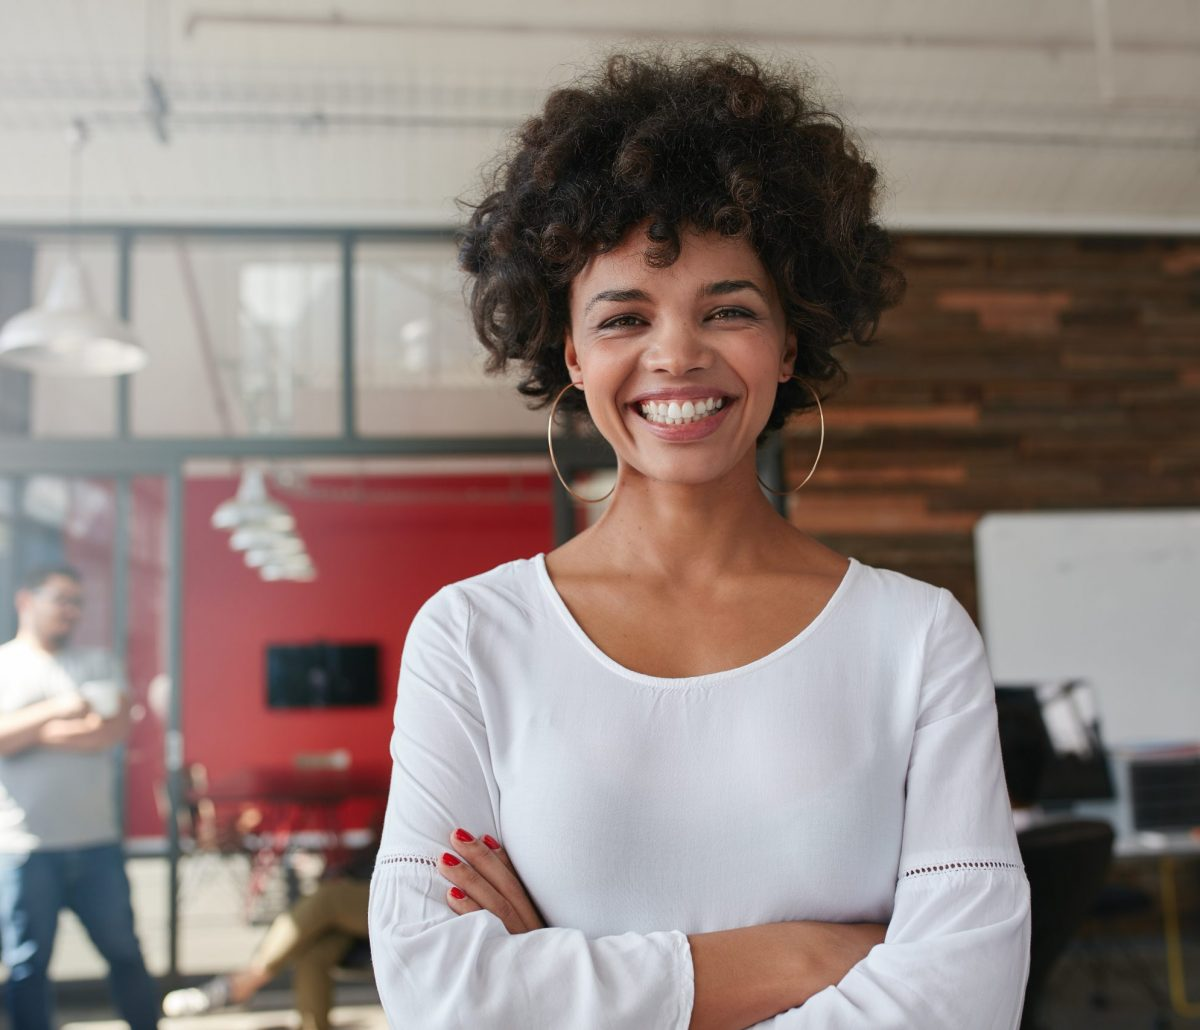 smiling-young-woman-standing-in-creative-office-PHKL7DX-scaled.jpg